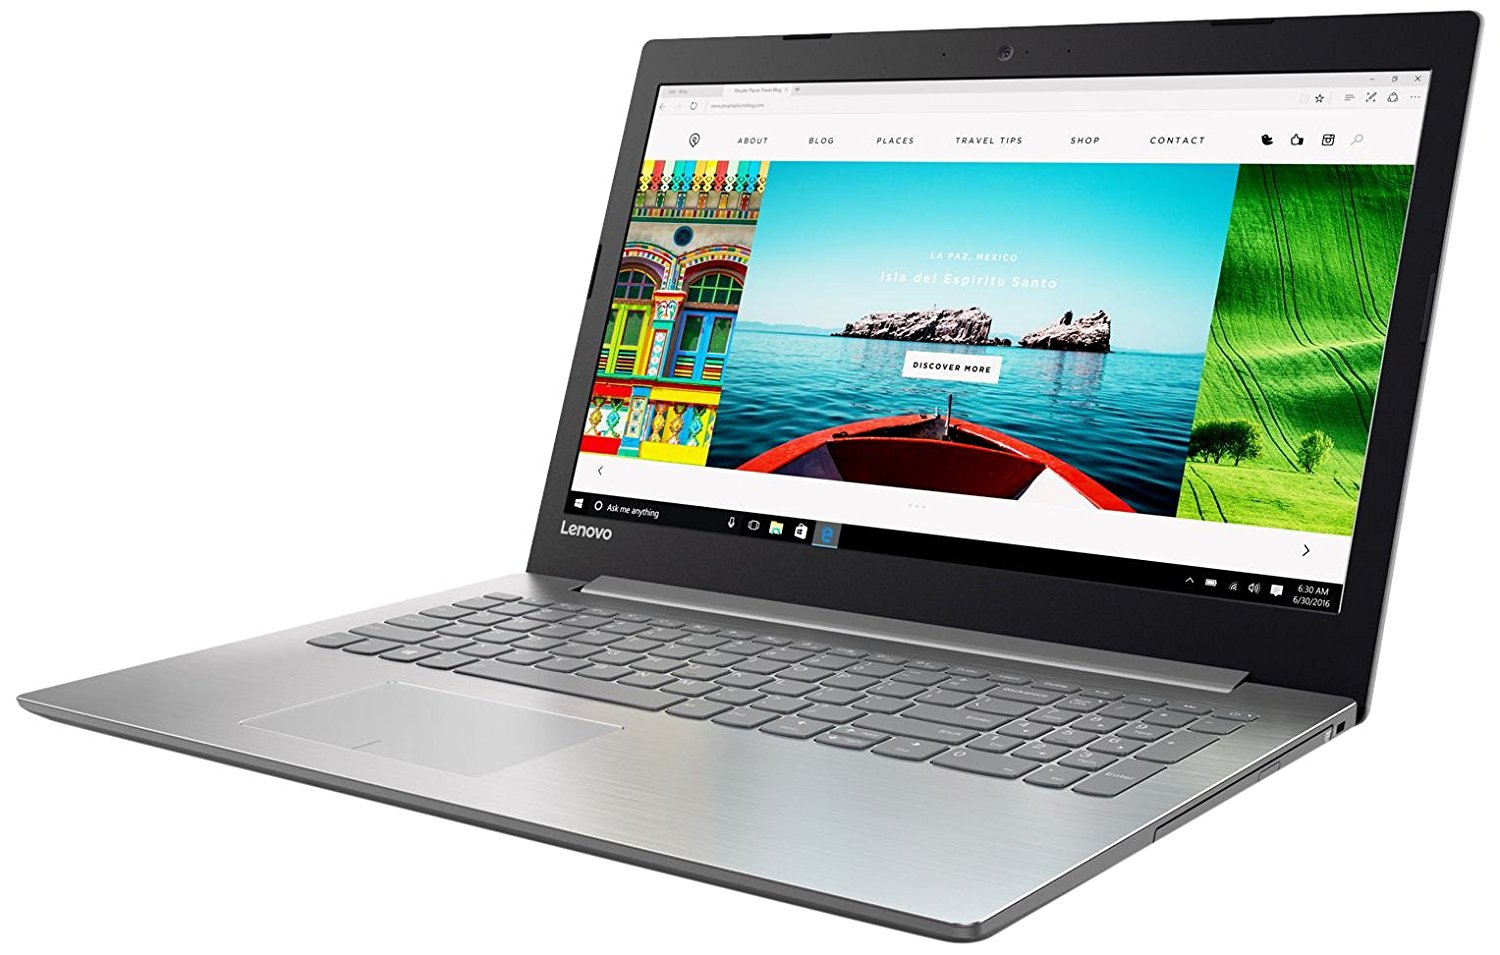 Amazon Offer : Get upto 30% off on Laptops